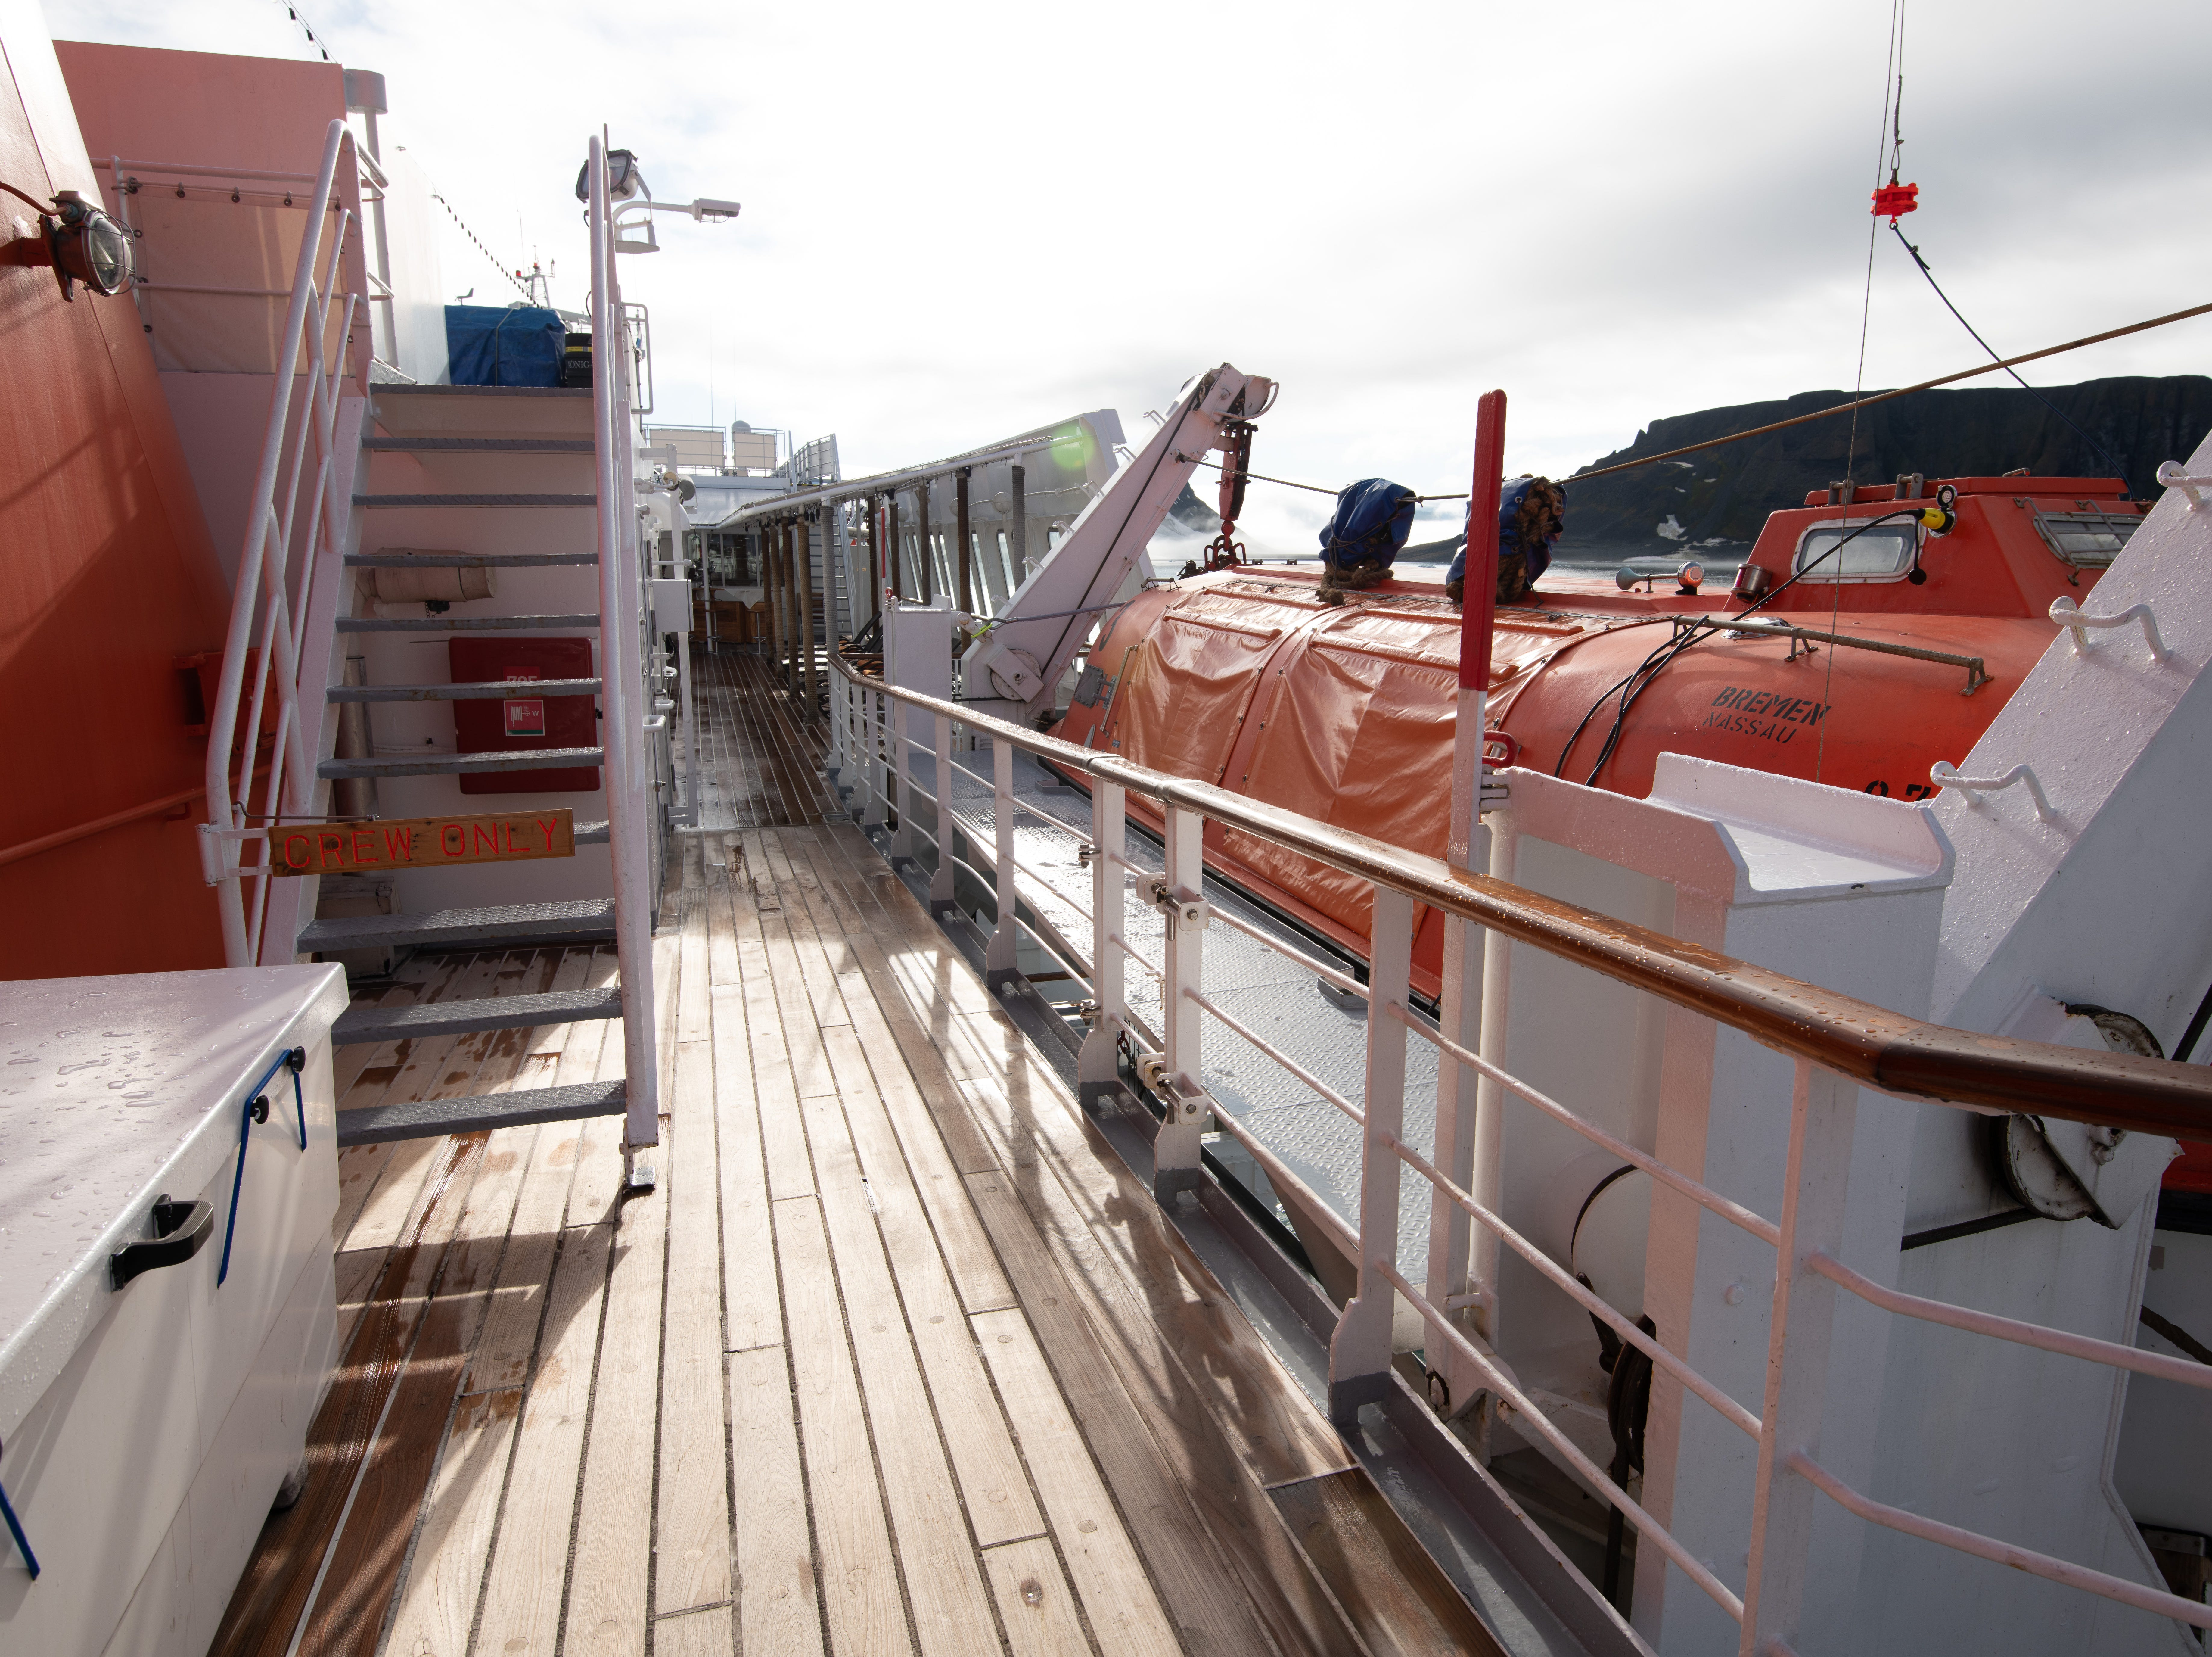 Bremen's lifeboats are located just off Deck 6 but are accessed via Deck 5.